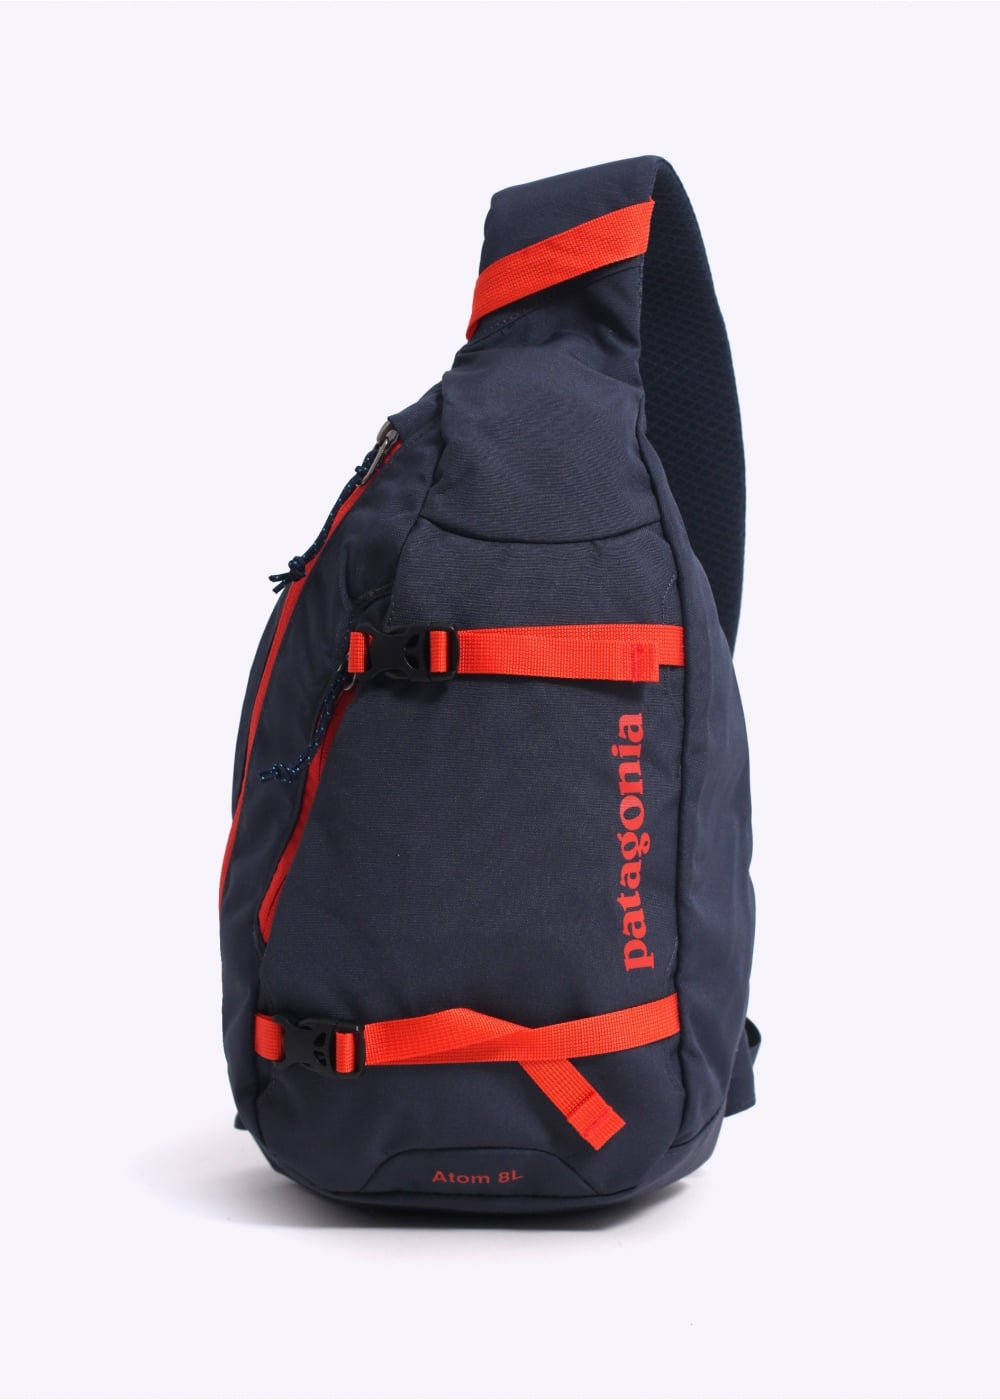 Patagonia Atom Sling Bag Smolder Blue Bags From Triads Uk